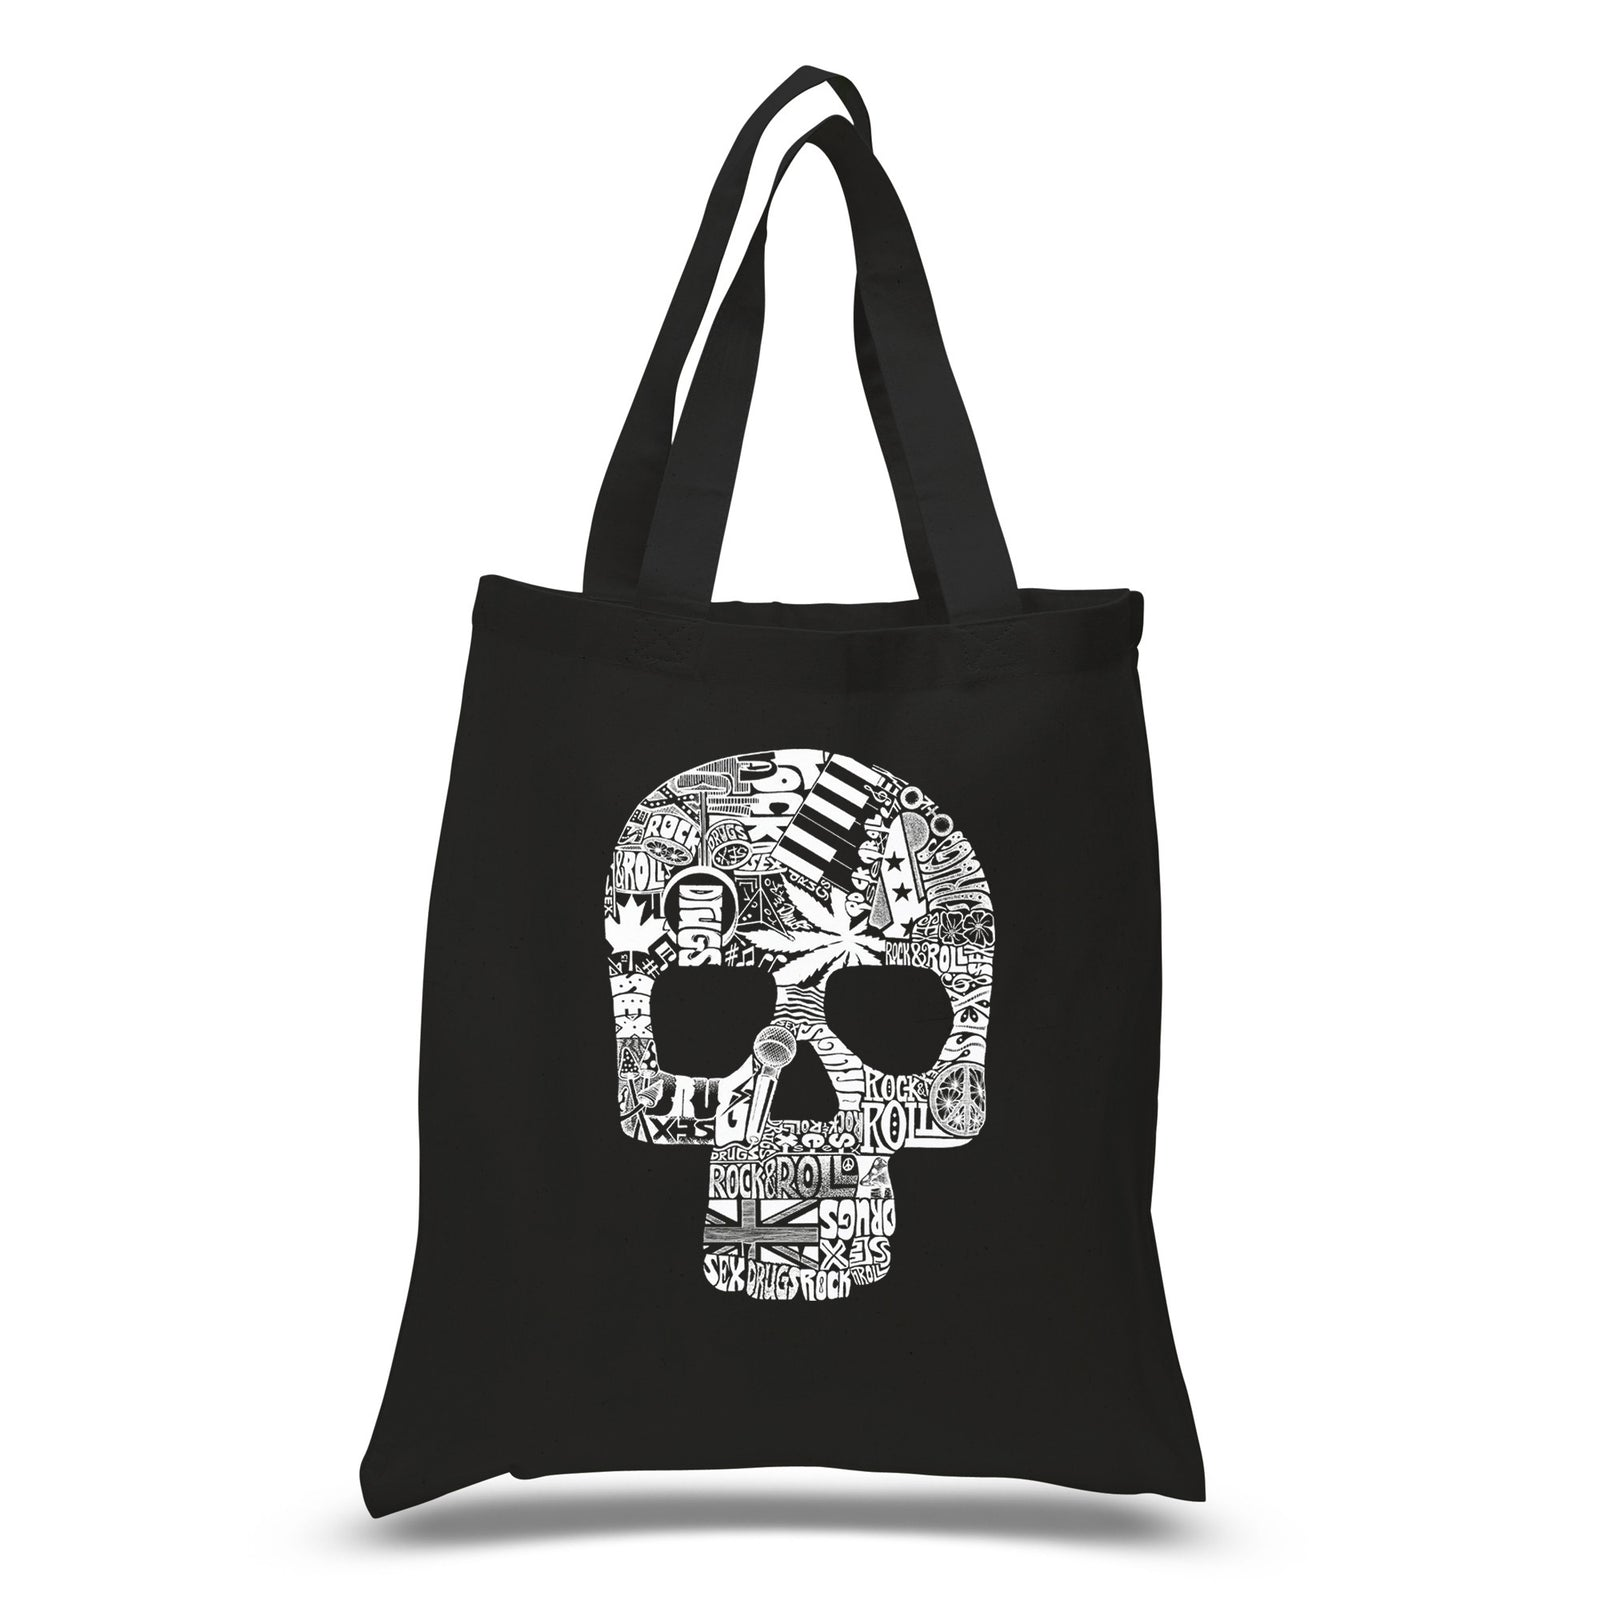 Small Tote Bag - Sex, Drugs, Rock & Roll